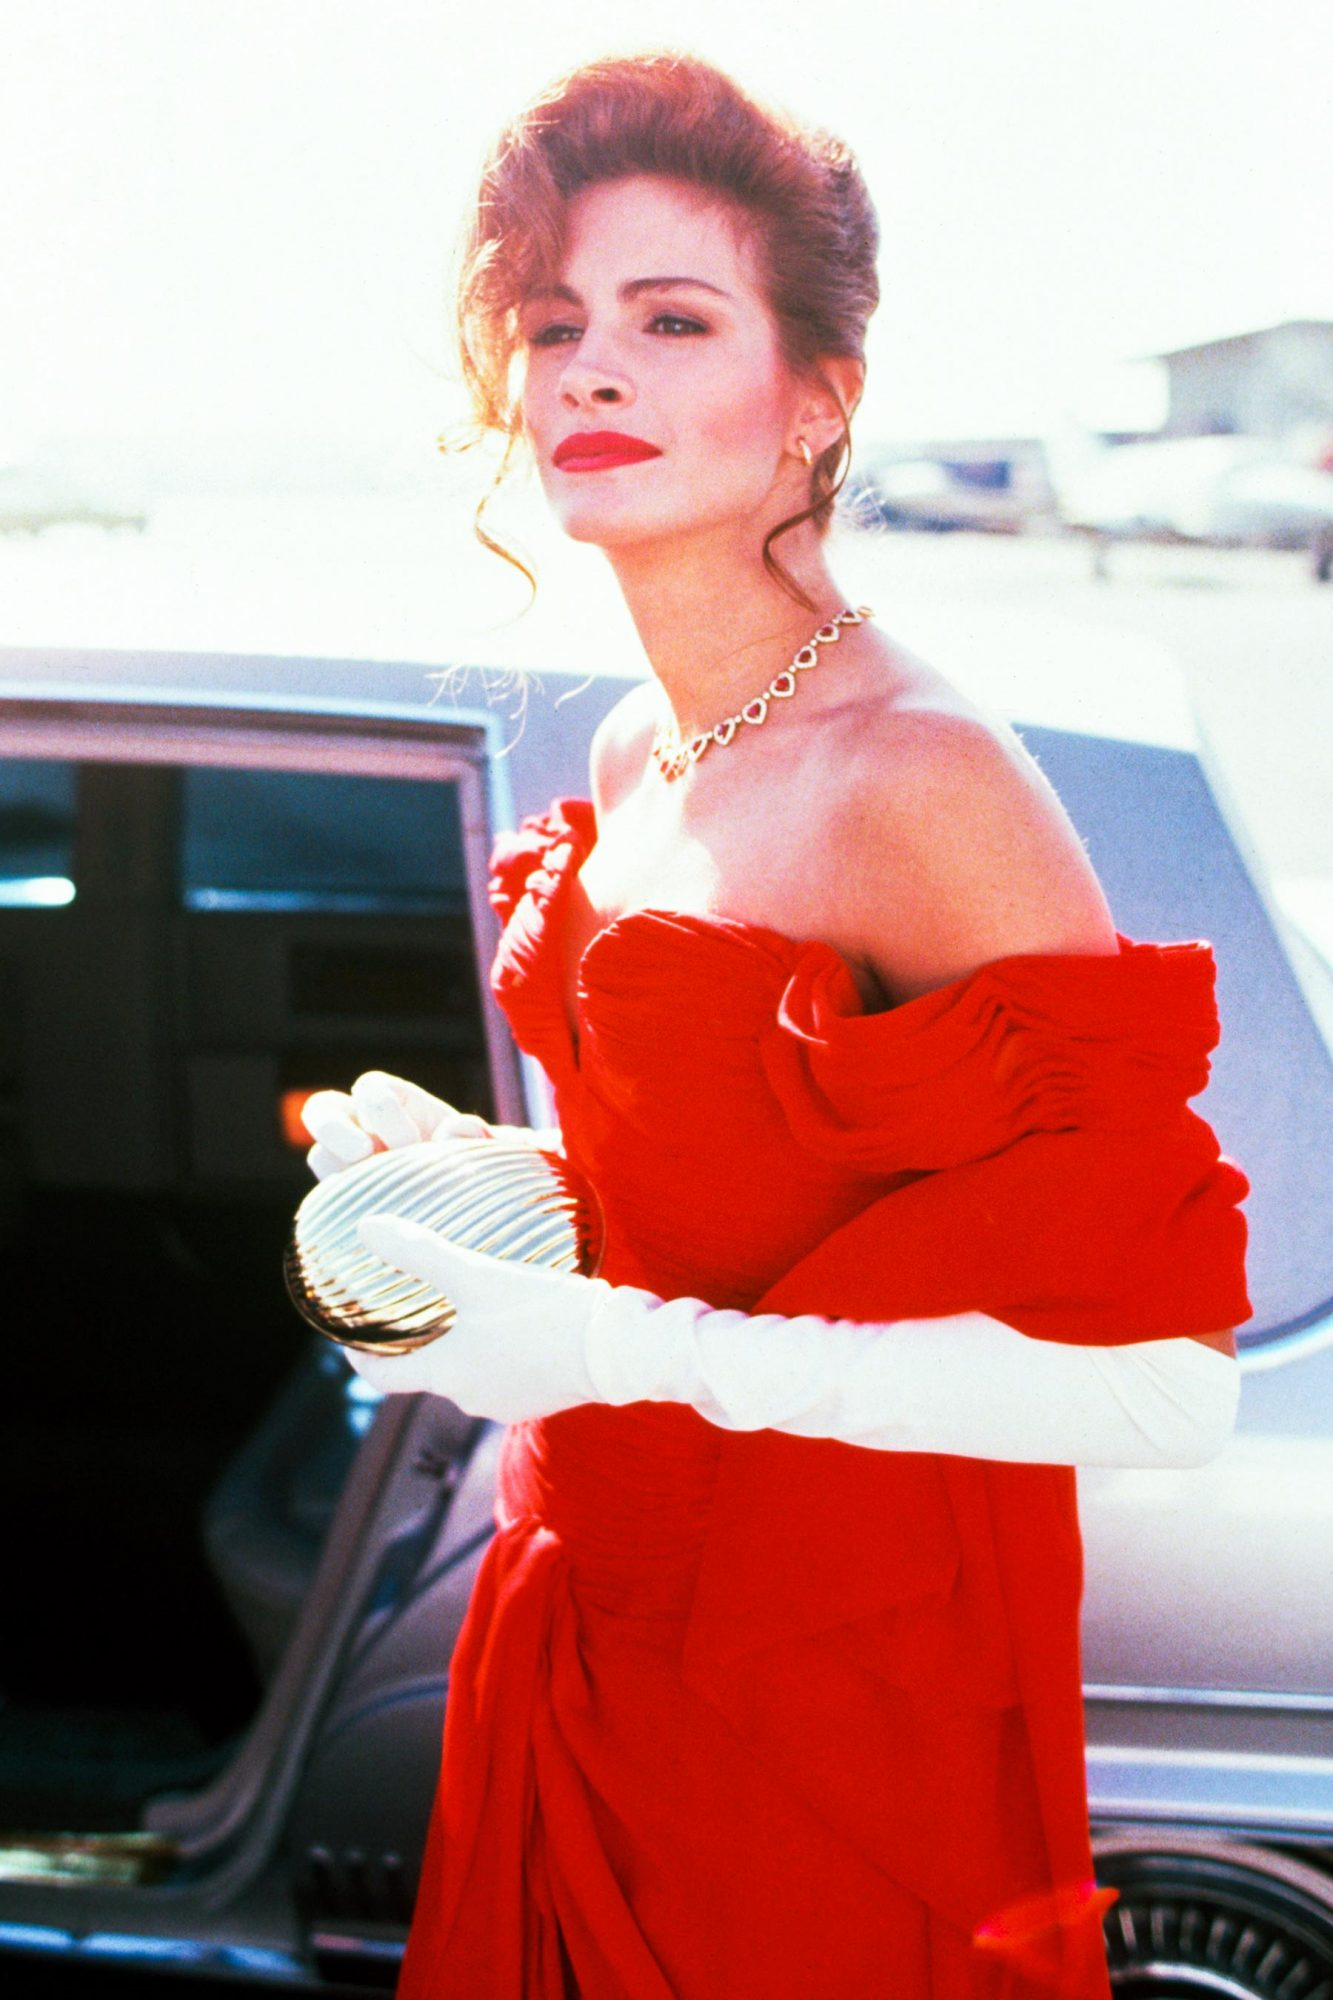 Vivian (Julia Roberts) in Pretty Woman (1990)